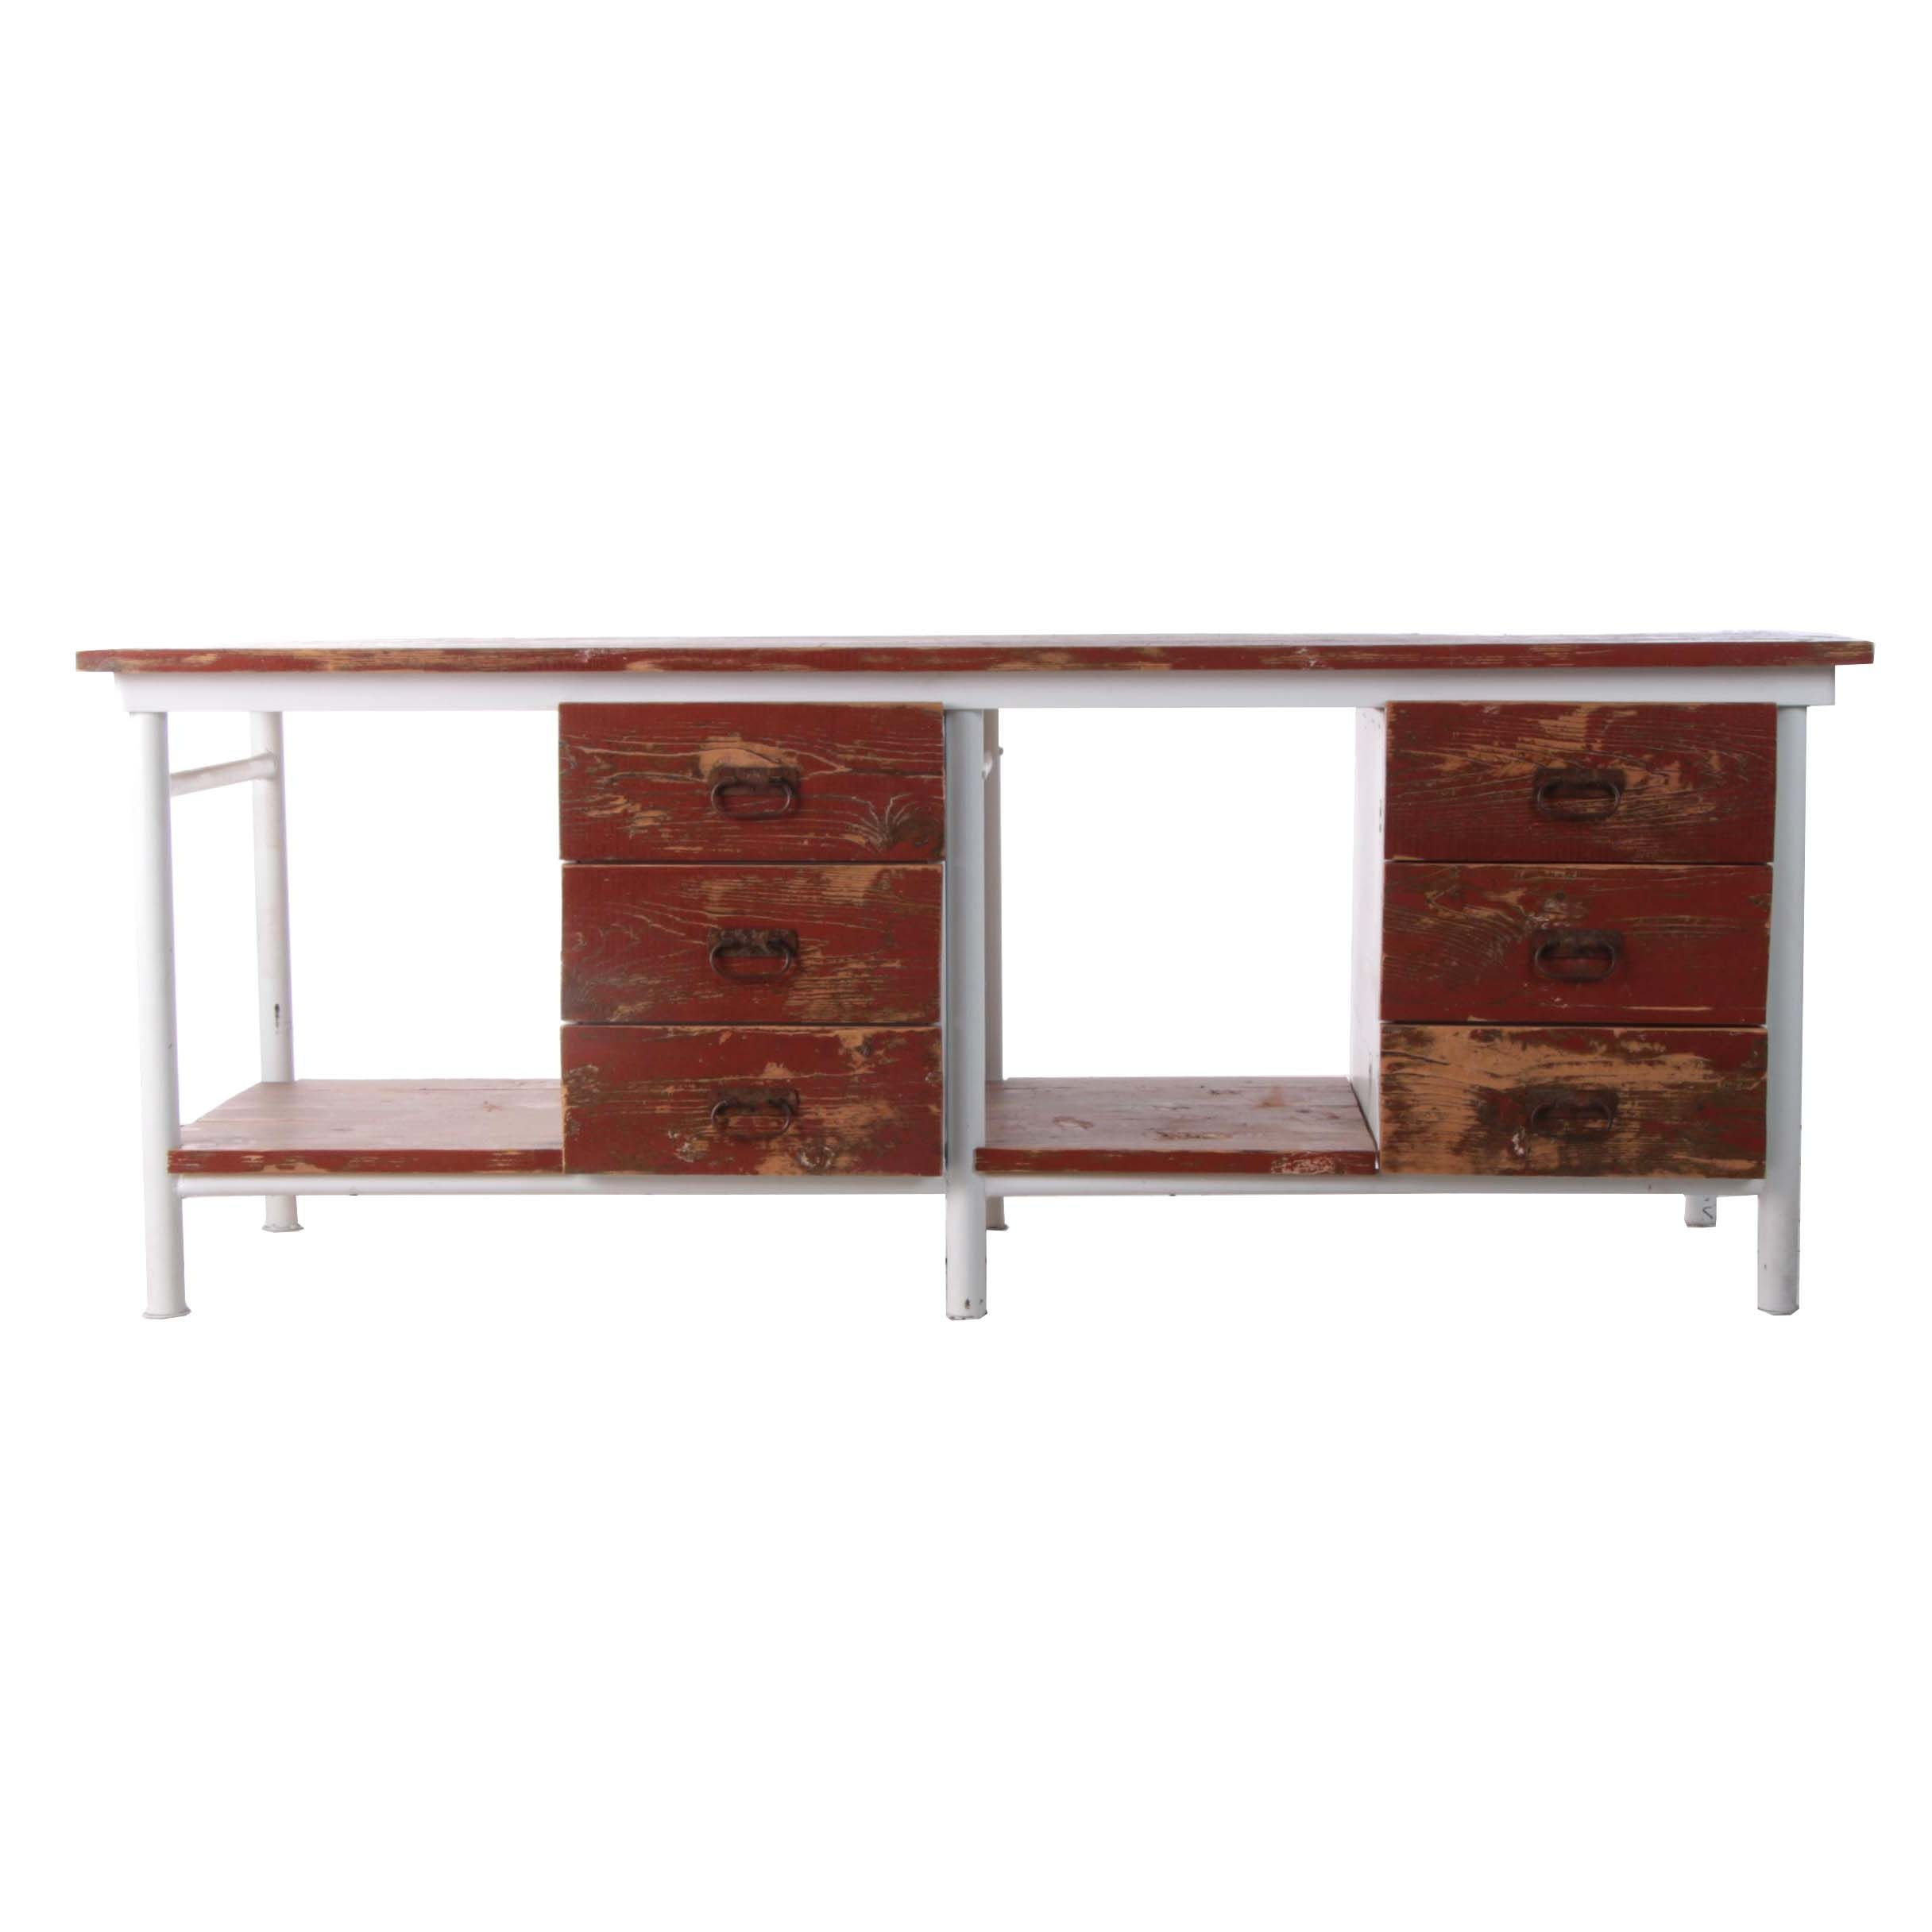 Industrial Style Painted Pine and Metal Work Table with Drawers, 21st Century